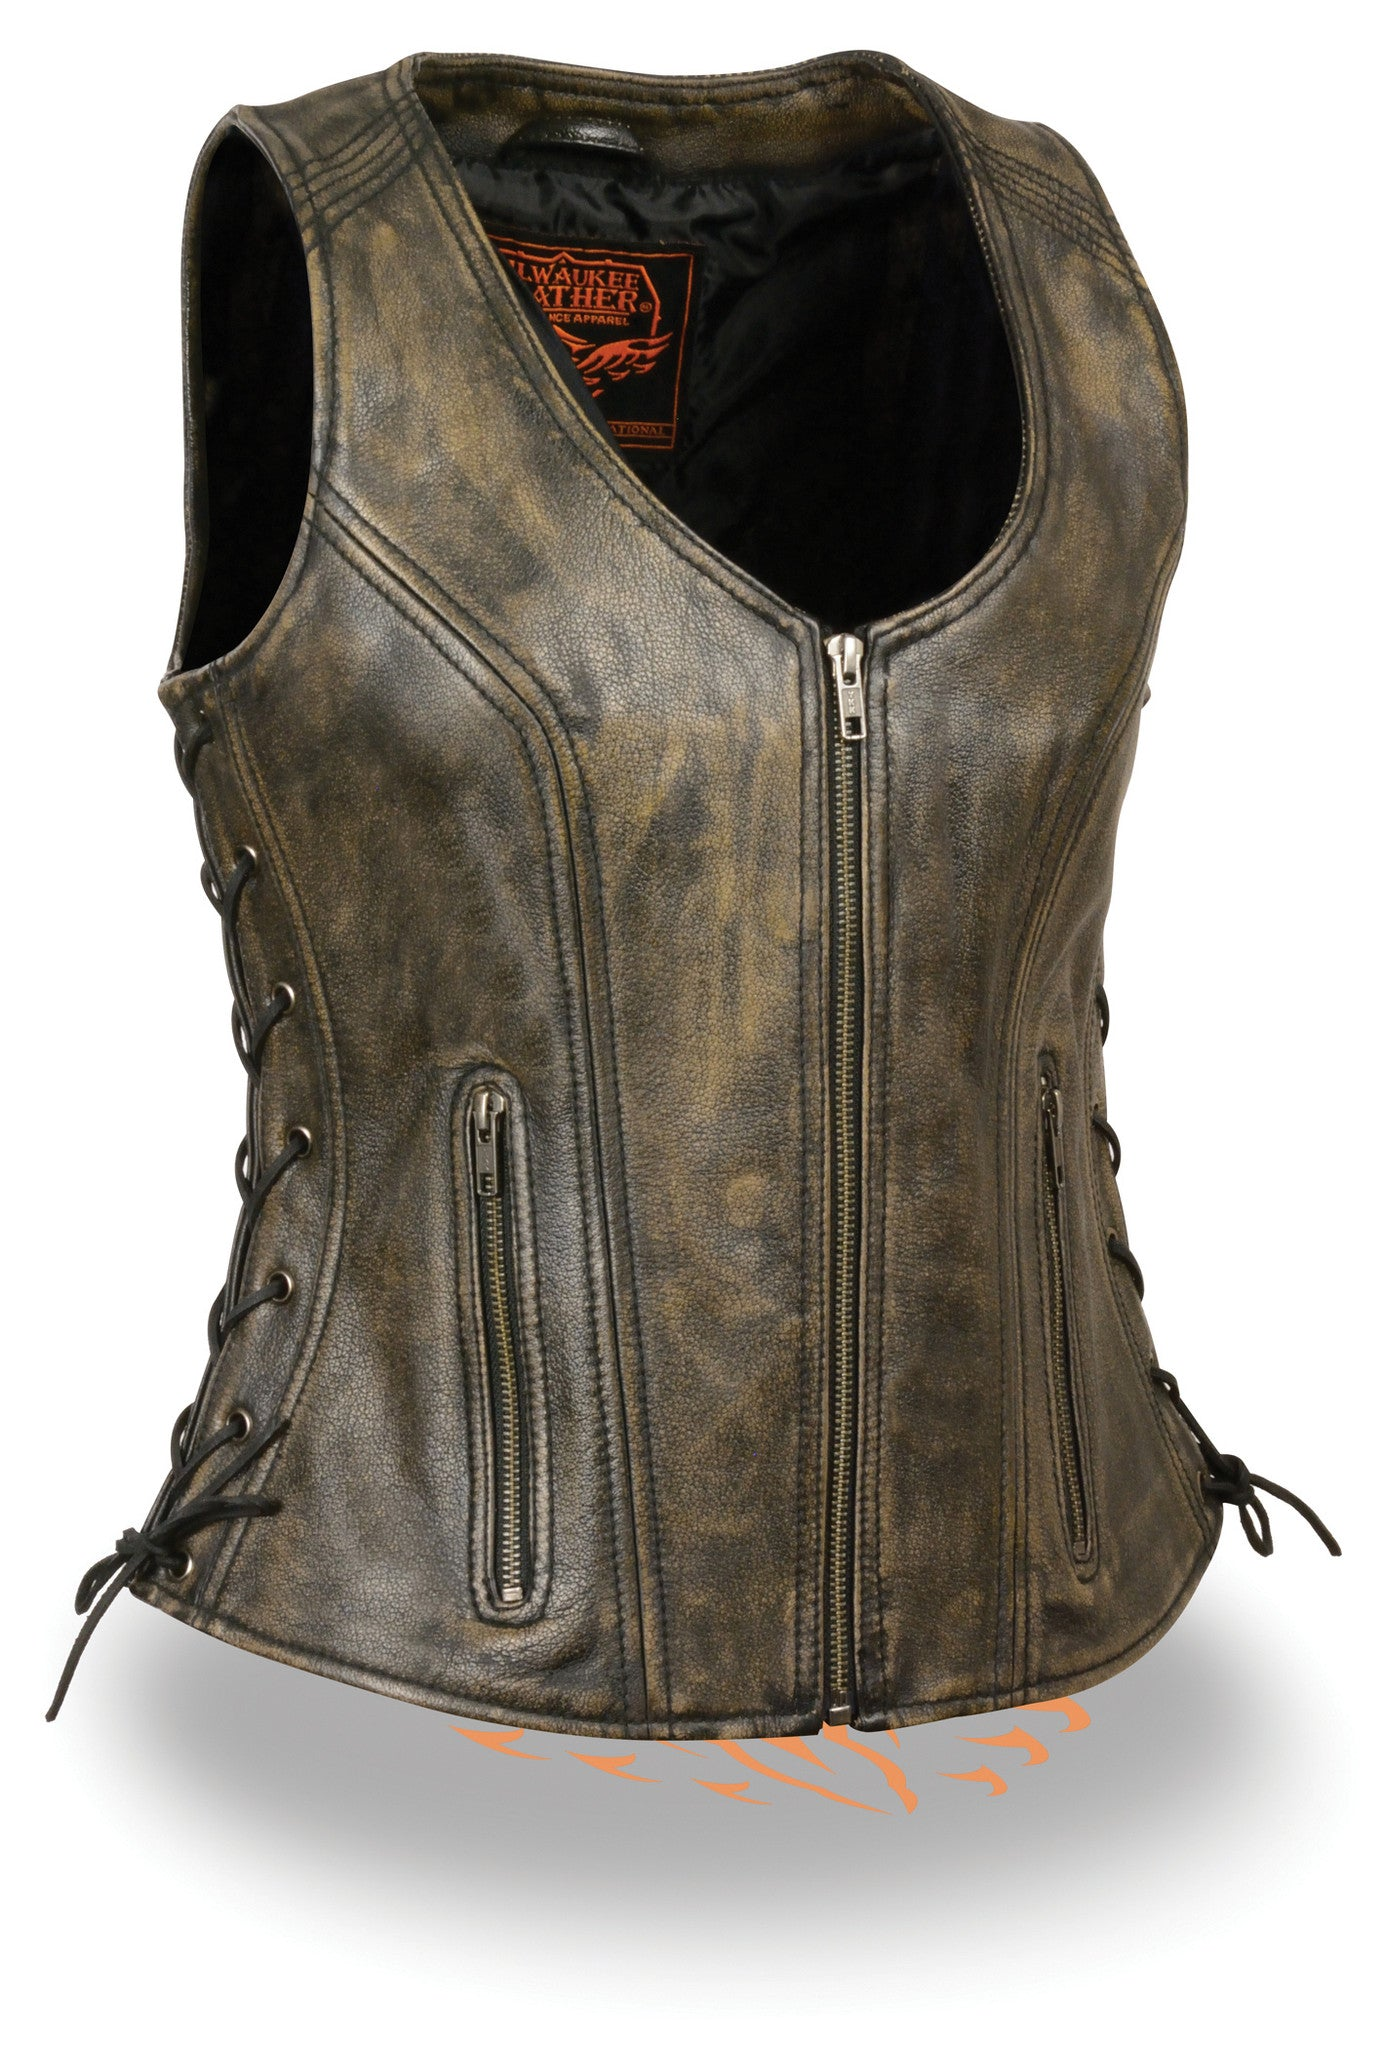 WOMEN'S DISTRESSED BROWN SOFT LEATHER VEST W/ SIDE LACES